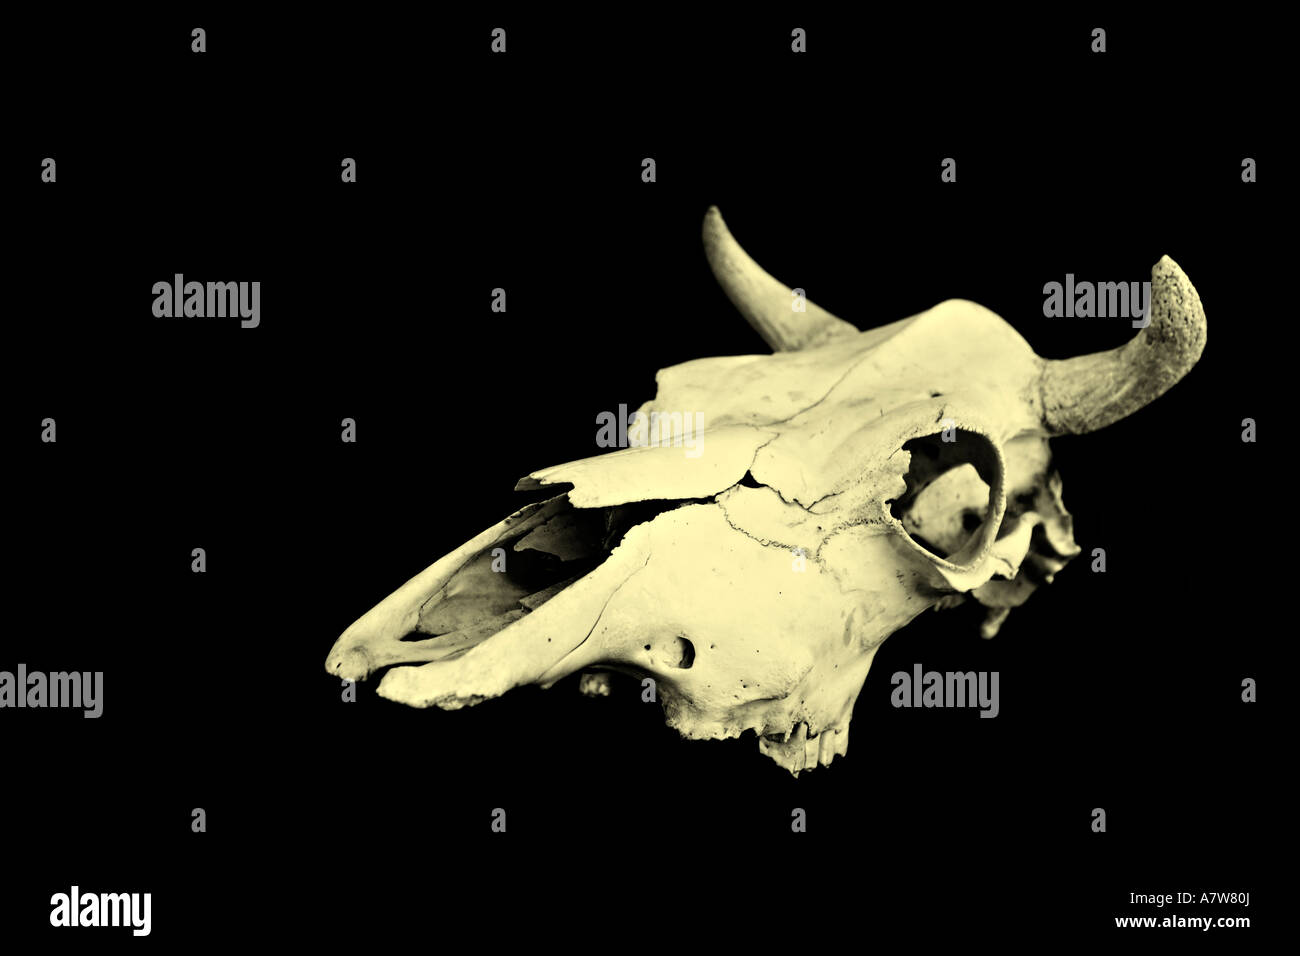 Cow Skull Stock Photos & Cow Skull Stock Images - Alamy